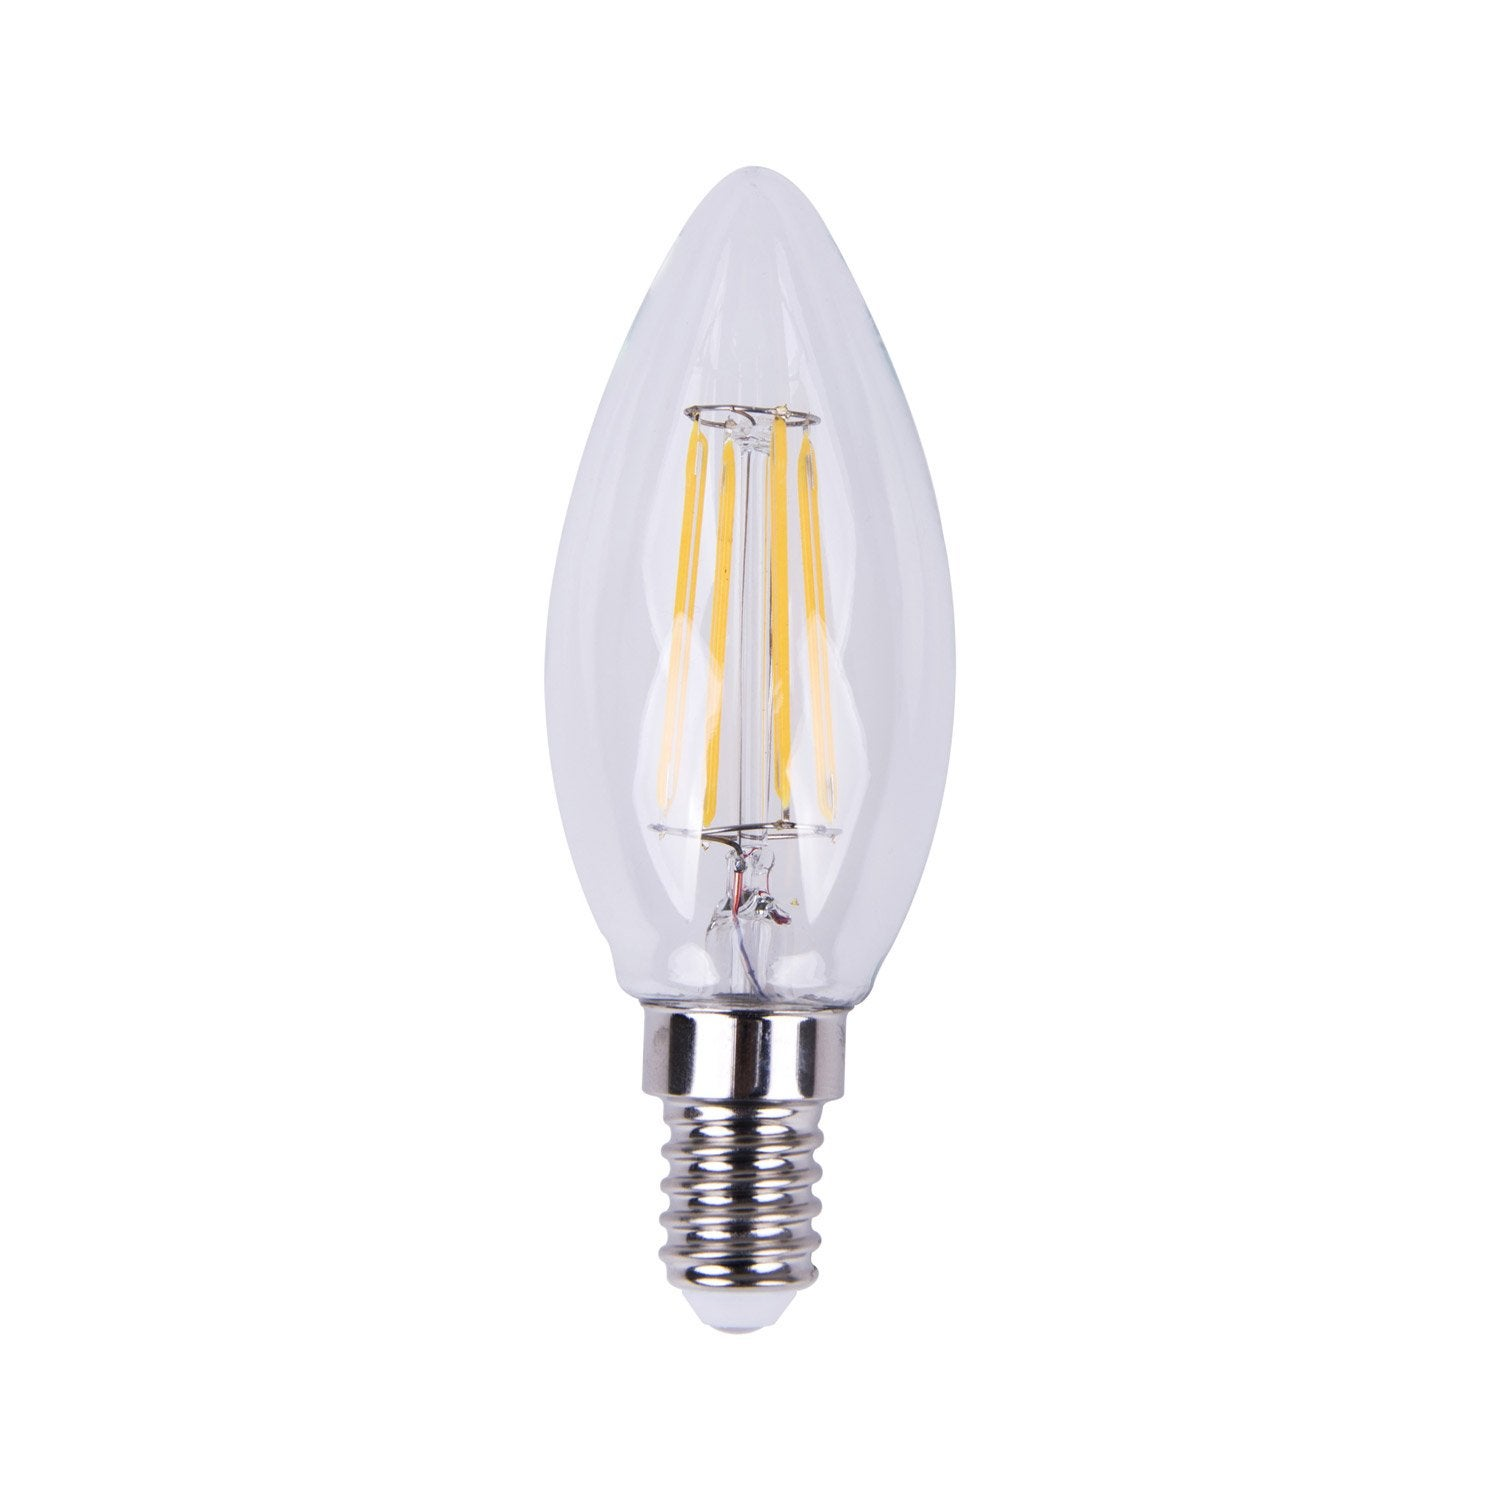 2700k Filament Flamme 360° Ampoule 40wE14 5w470lméquiv Led Lexman ulF13TcJ5K